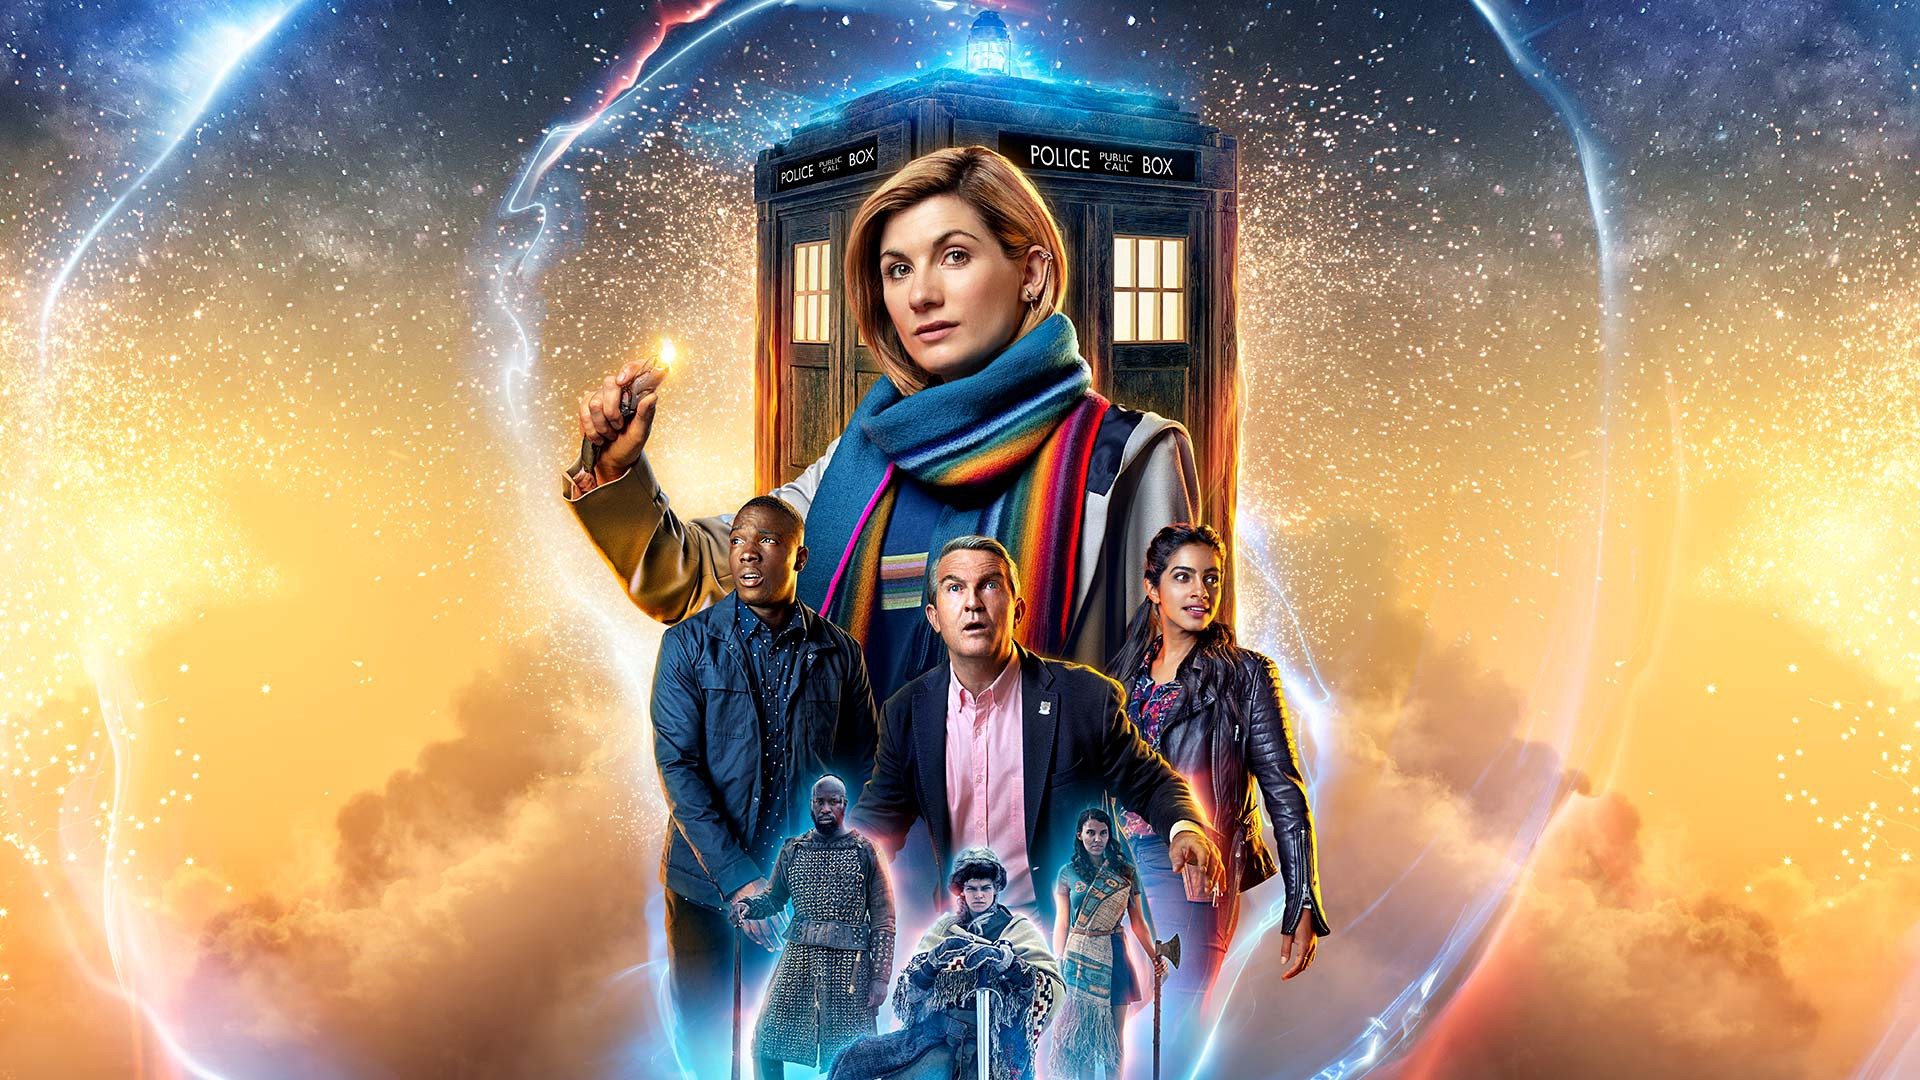 Doctor Who Resolution Kicked Off The New Year With A Bang Blu Review